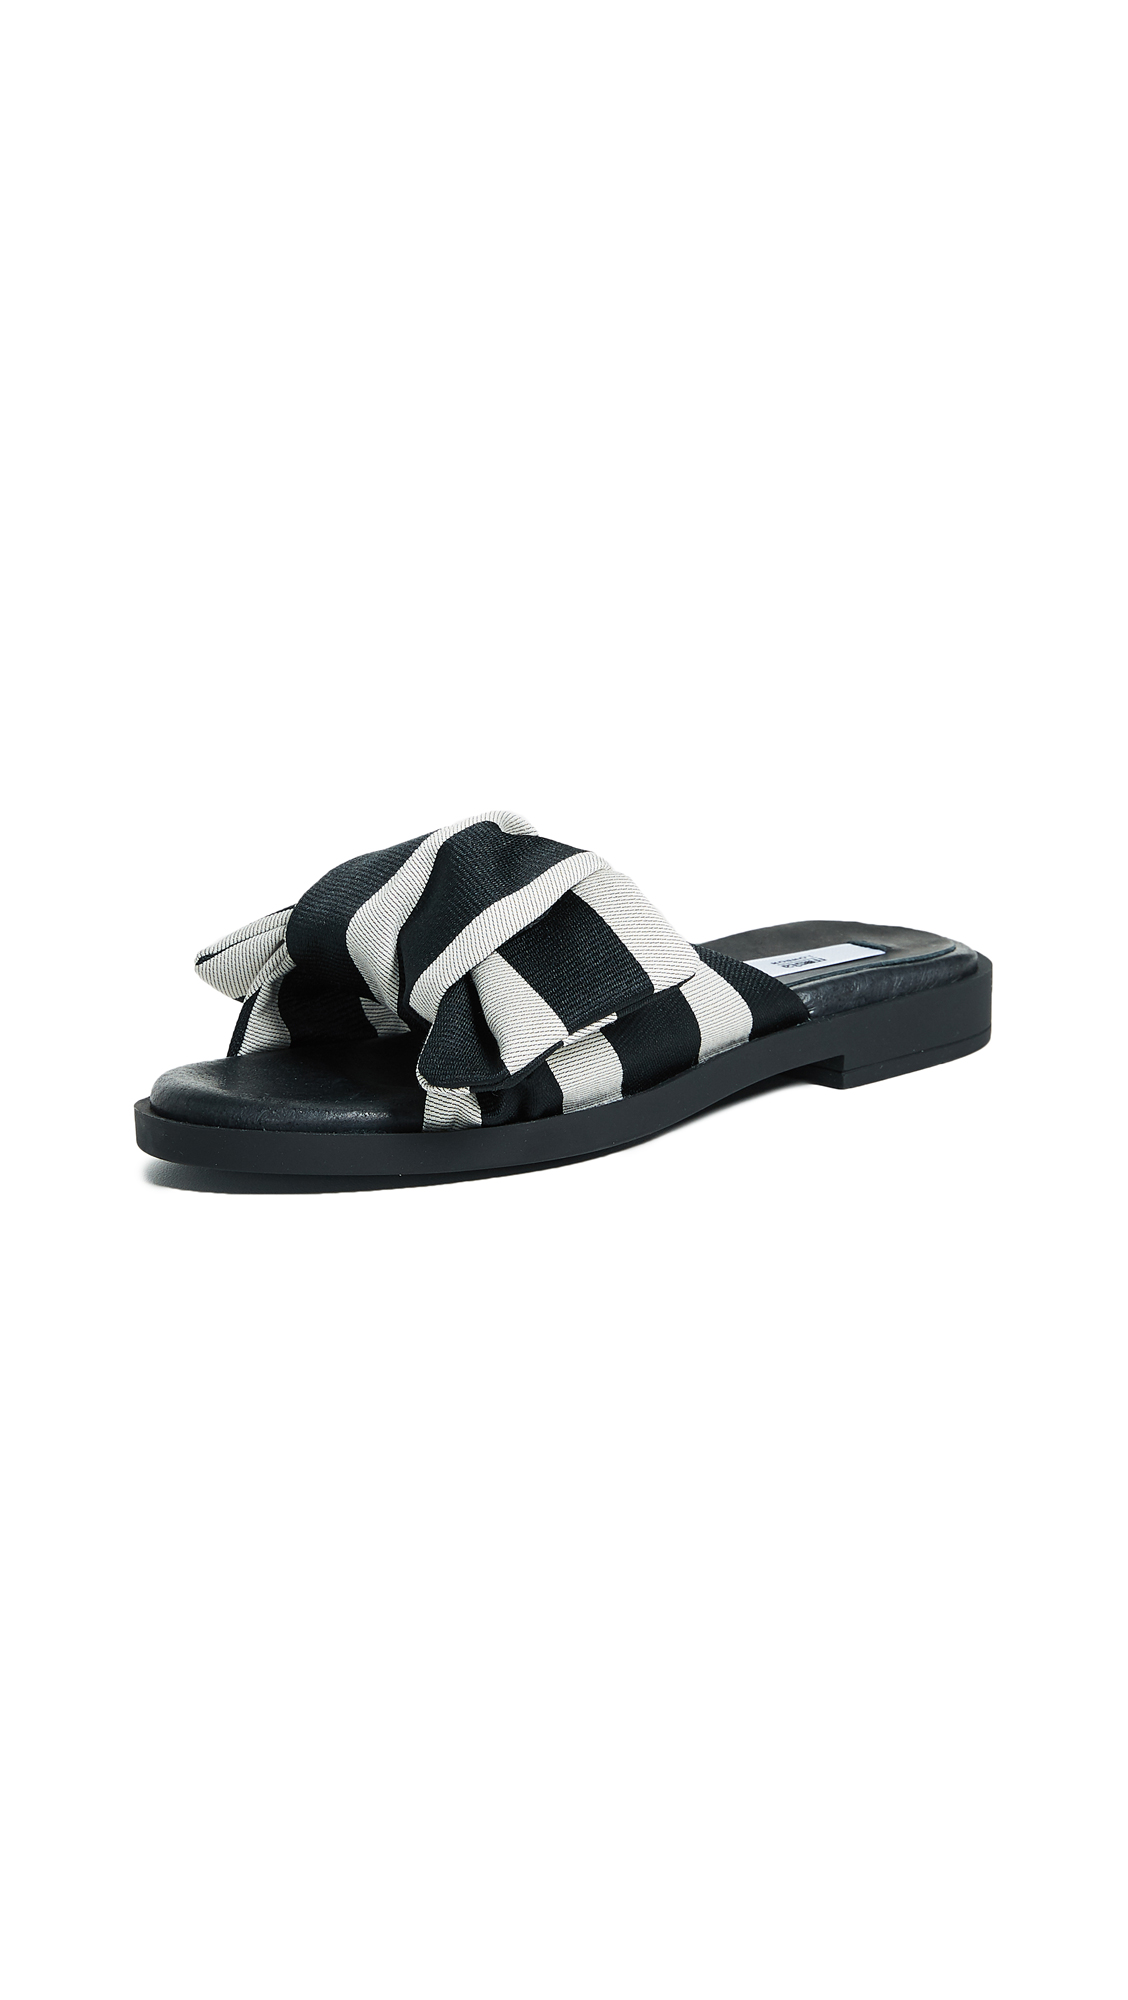 Miista Valerie Bow Sandals - Black Stripe